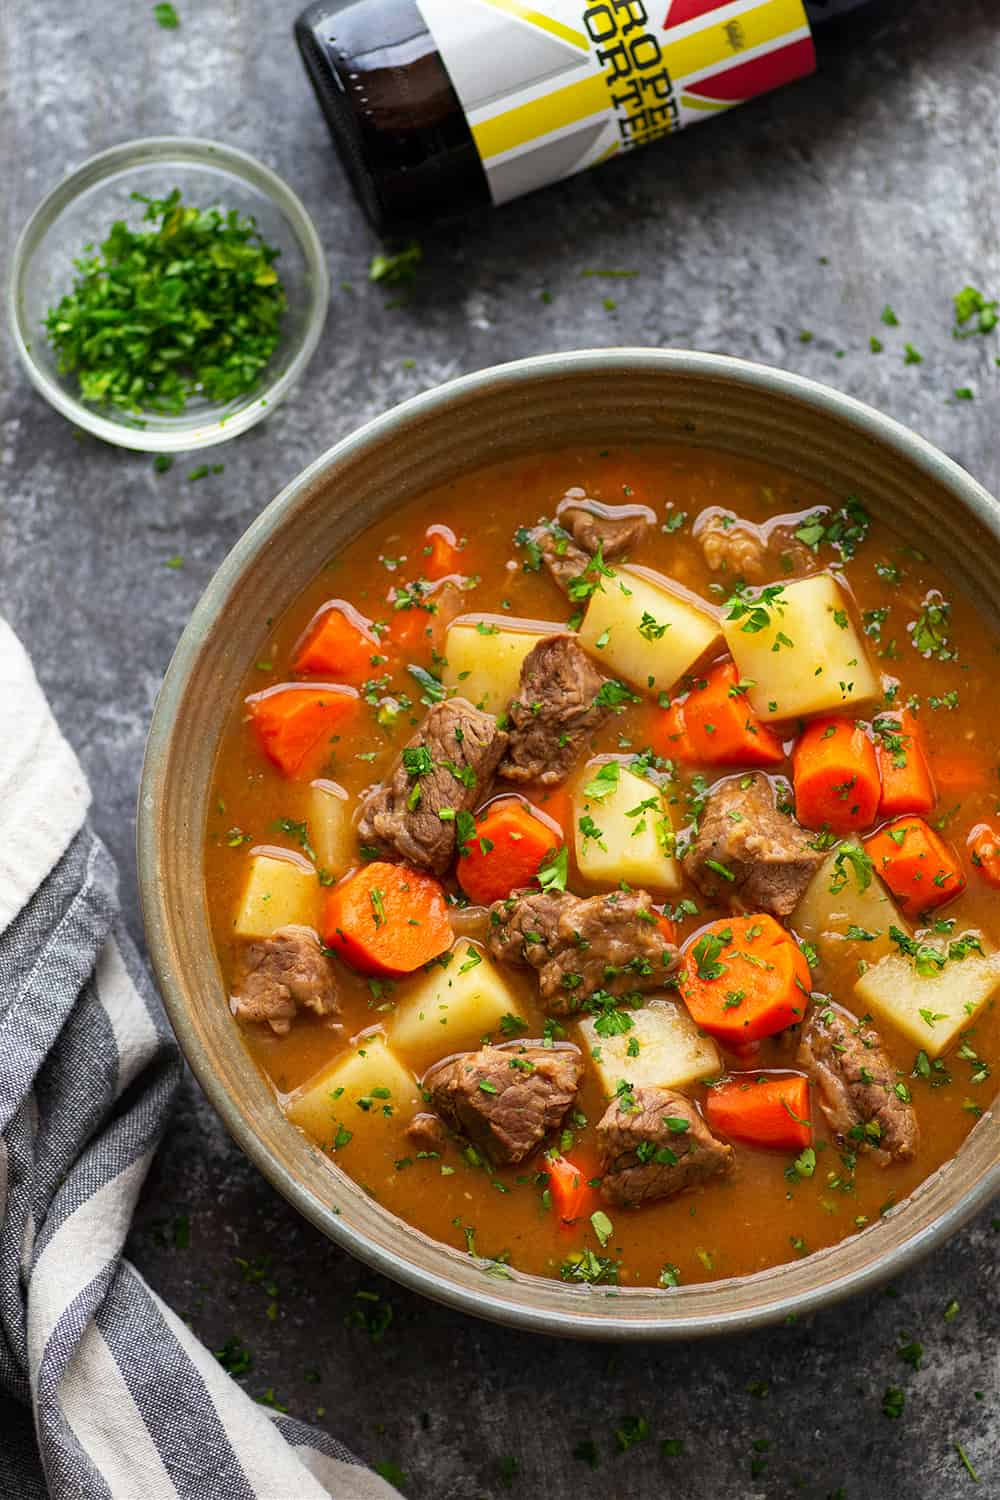 Irish beef stew is made entirely in the instant pot in only an hour and features tender beef cubes and vegetables in a rich stout sauce.